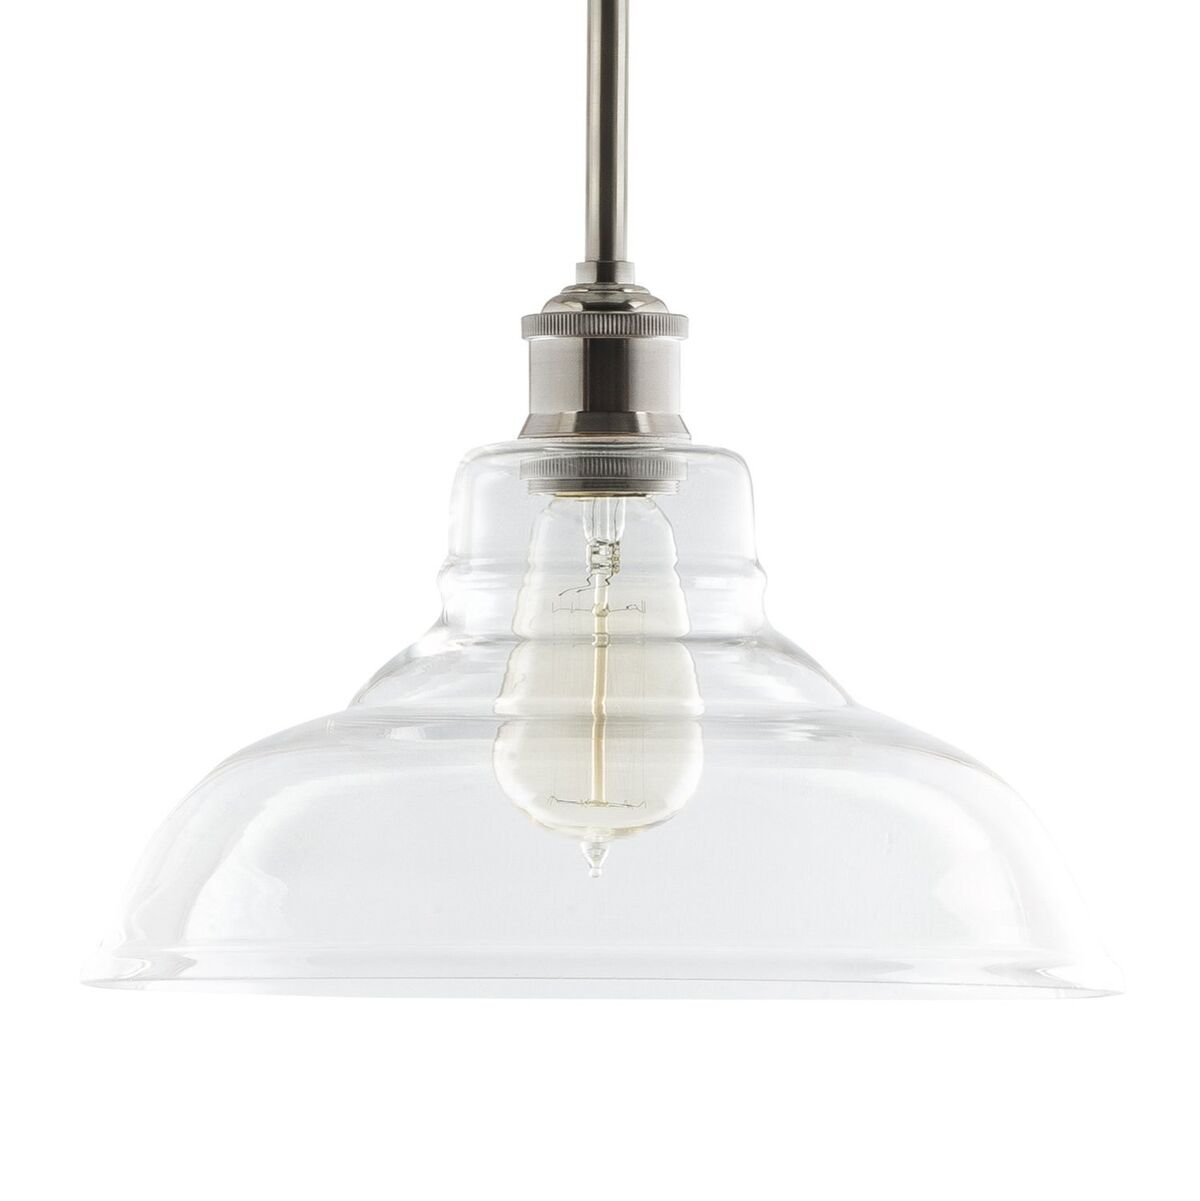 Lucera Contemporary Kitchen Pendant Light - Brushed Nickel Hanging Fixture - Linea di Liara LL-P431-BN by Linea di Liara